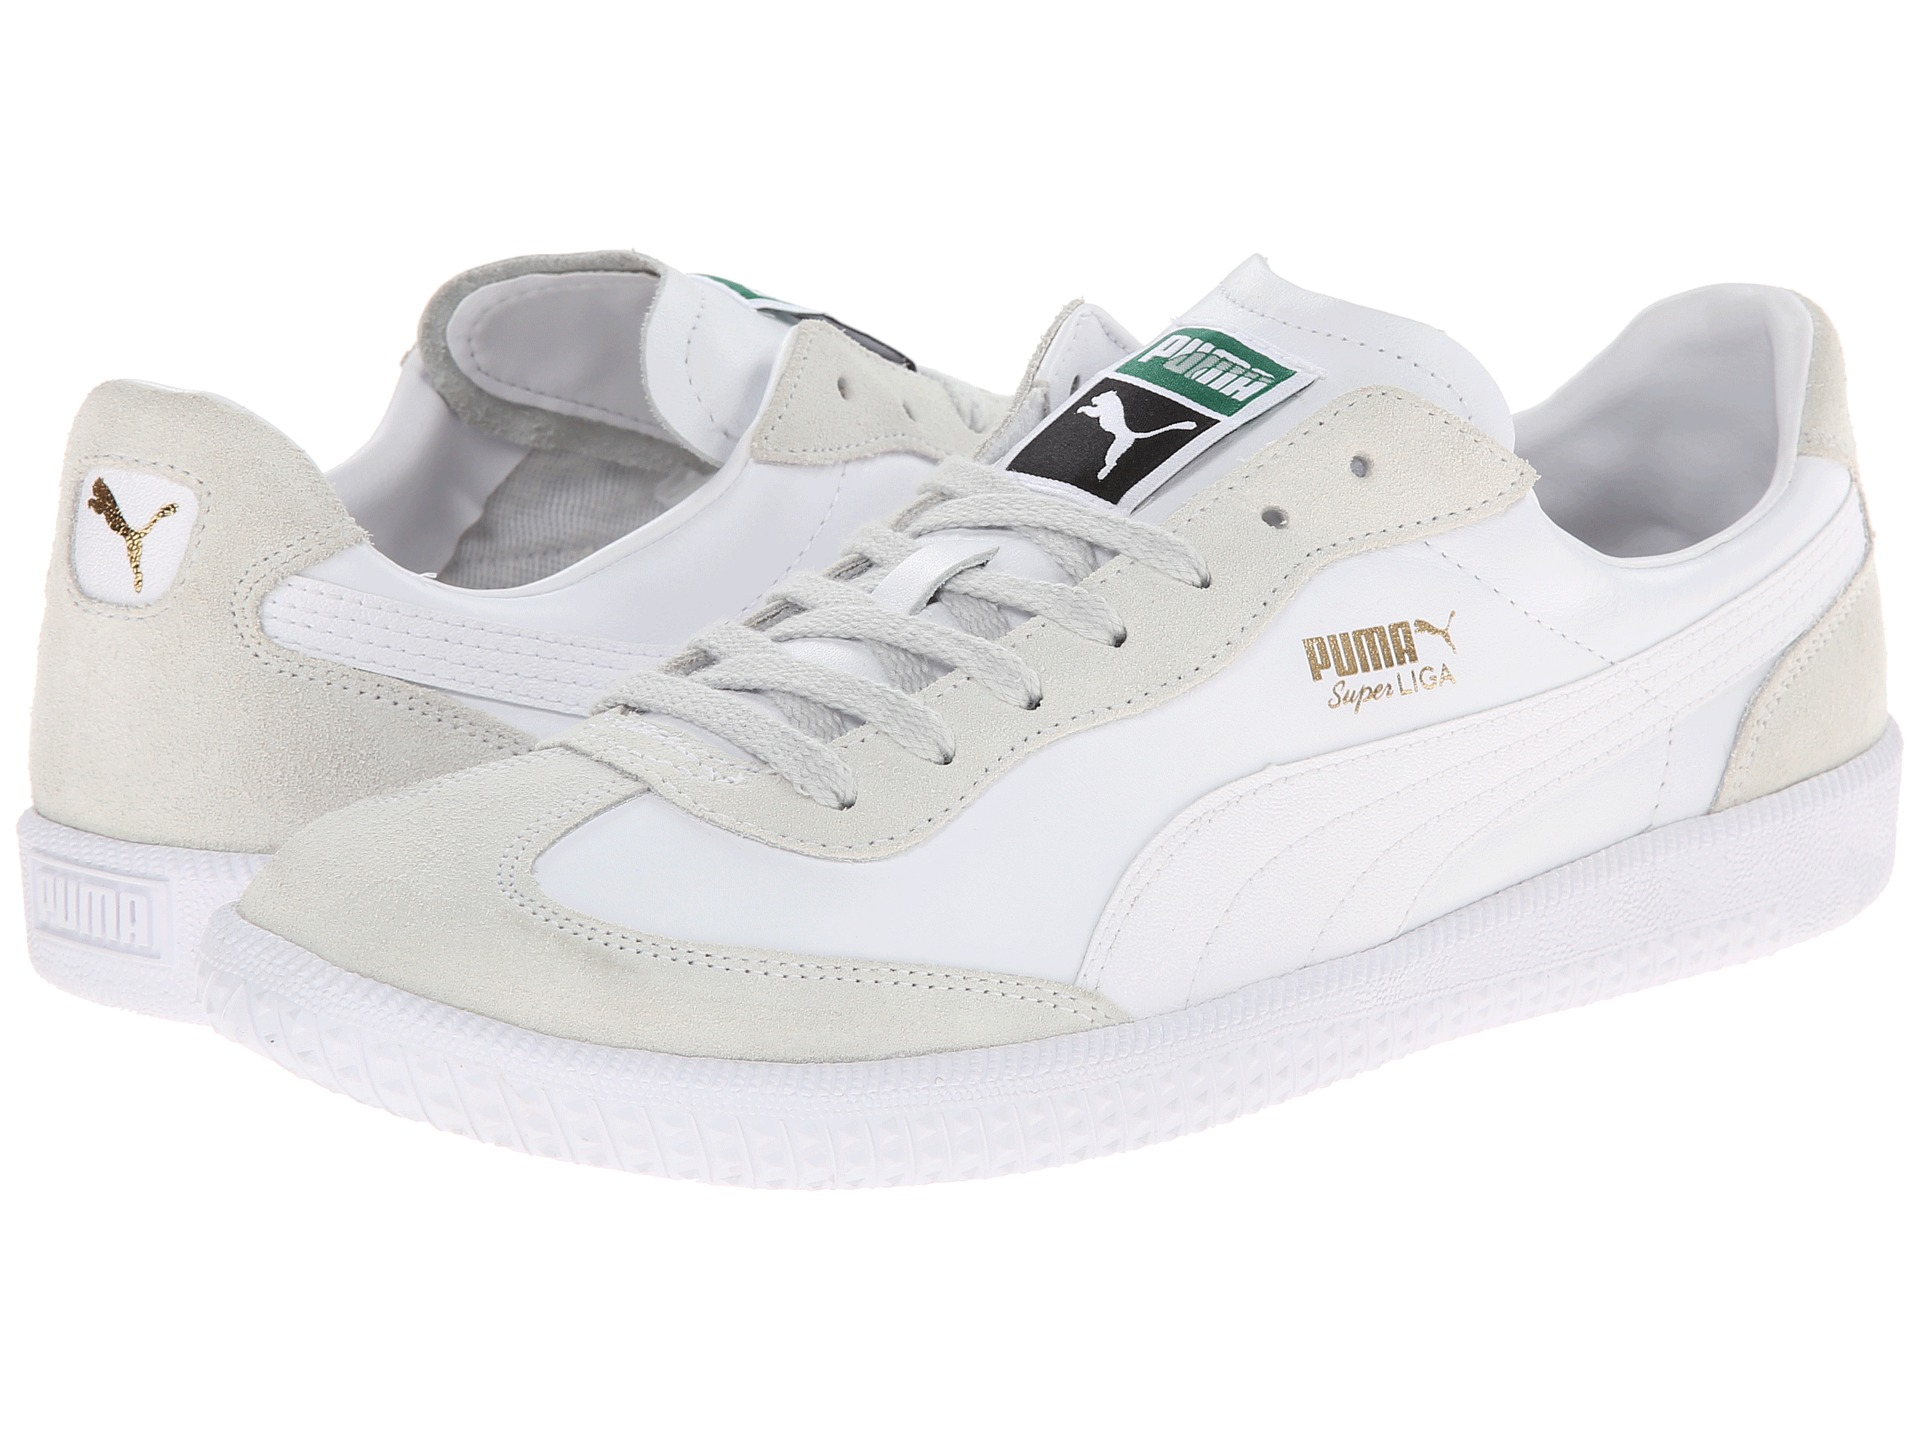 ... Lyst - Puma Super Liga Og Retro in White ... 6c2ff0d51